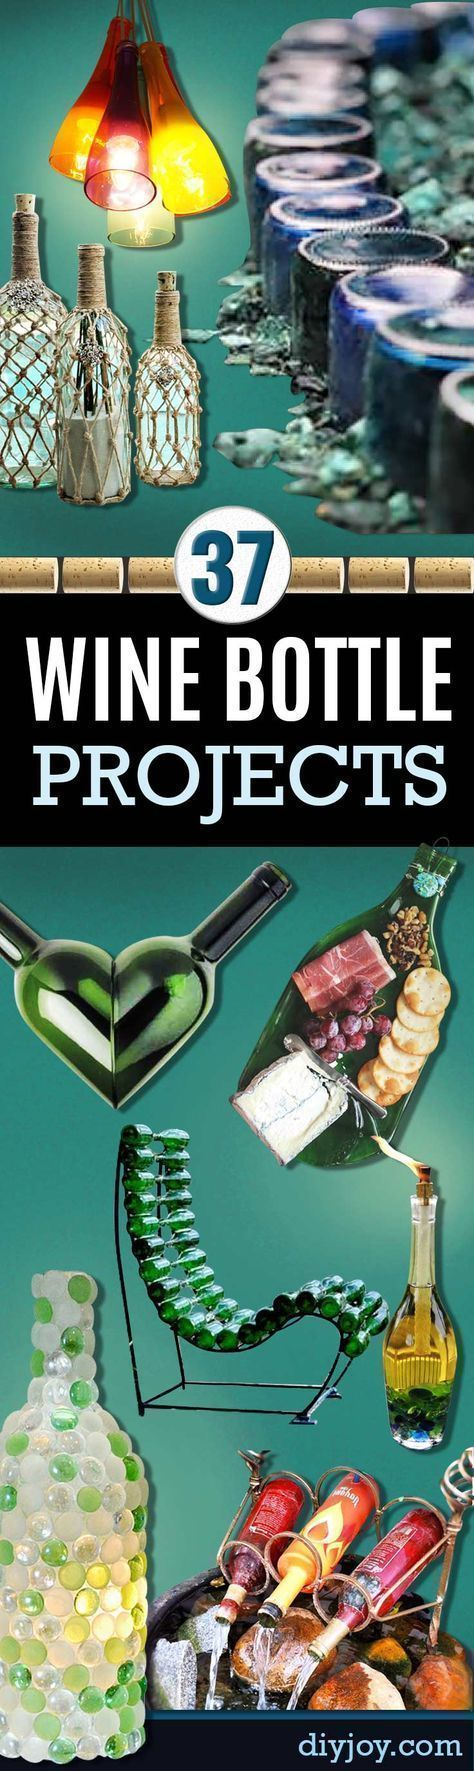 Wine Bottle DIY Crafts - Projects for Lights, Decoration, Gift Ideas, Wedding, Christmas. Easy Cut Glass Ideas for Home Decor on Pinterest http://diyjoy.com/wine-bottle-crafts #DIYHomeDecorGifts #winebottlecrafts #winecrafts #diychristmasgifts #christmasdecorationsdiy #christmasdecorationcrafts #homedecorideas #homedecordiy